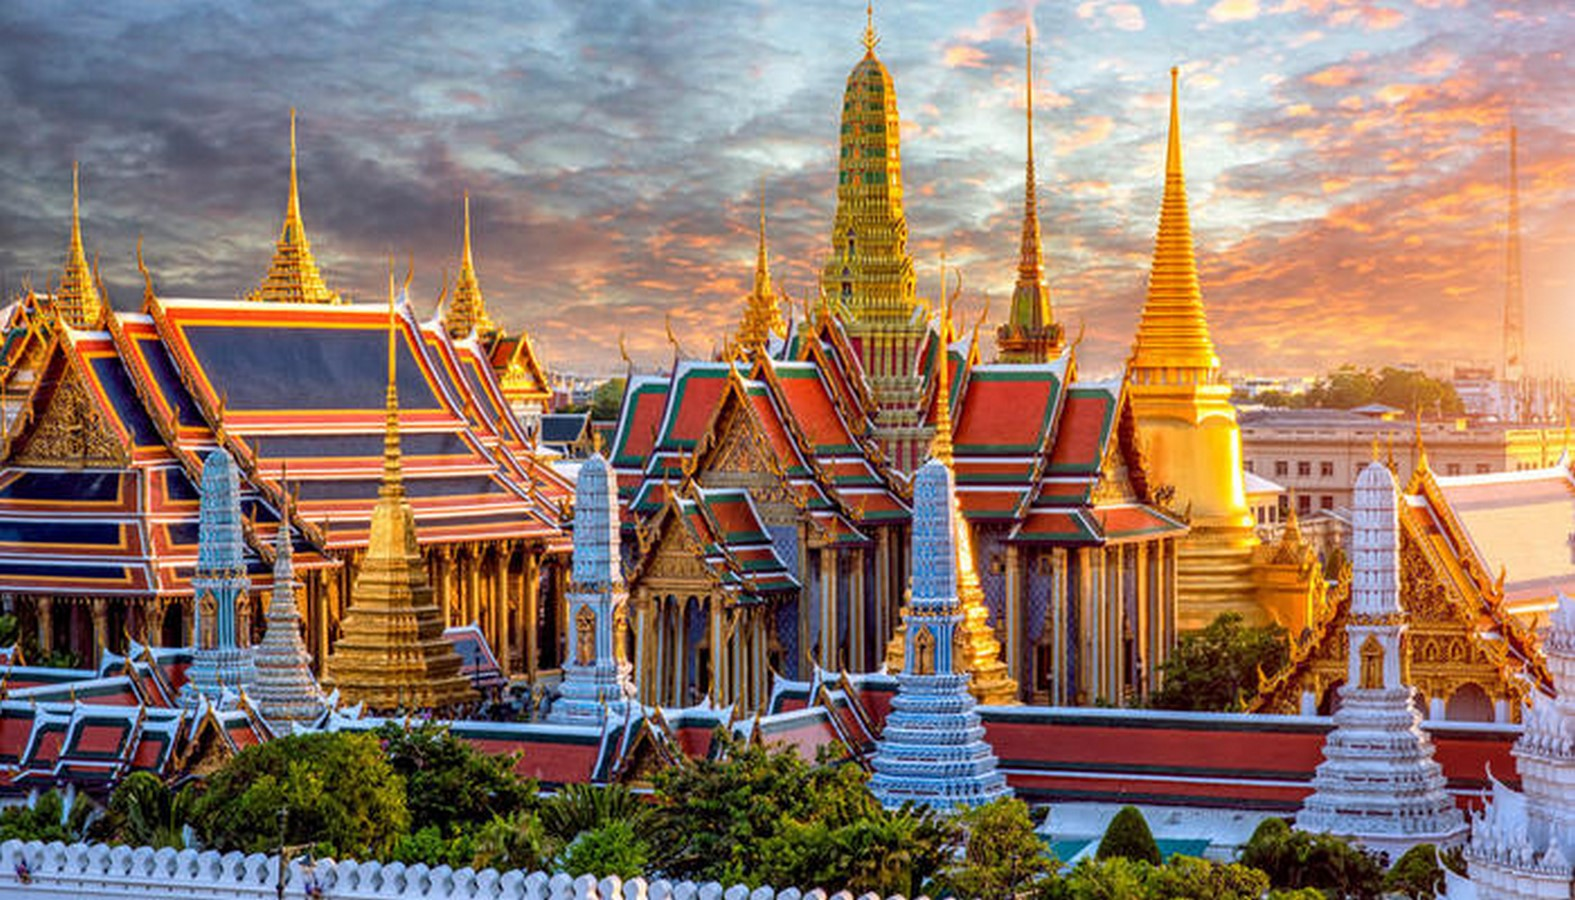 Grand Palace by John Clunish- A landmark for Thai architecture- sheet1